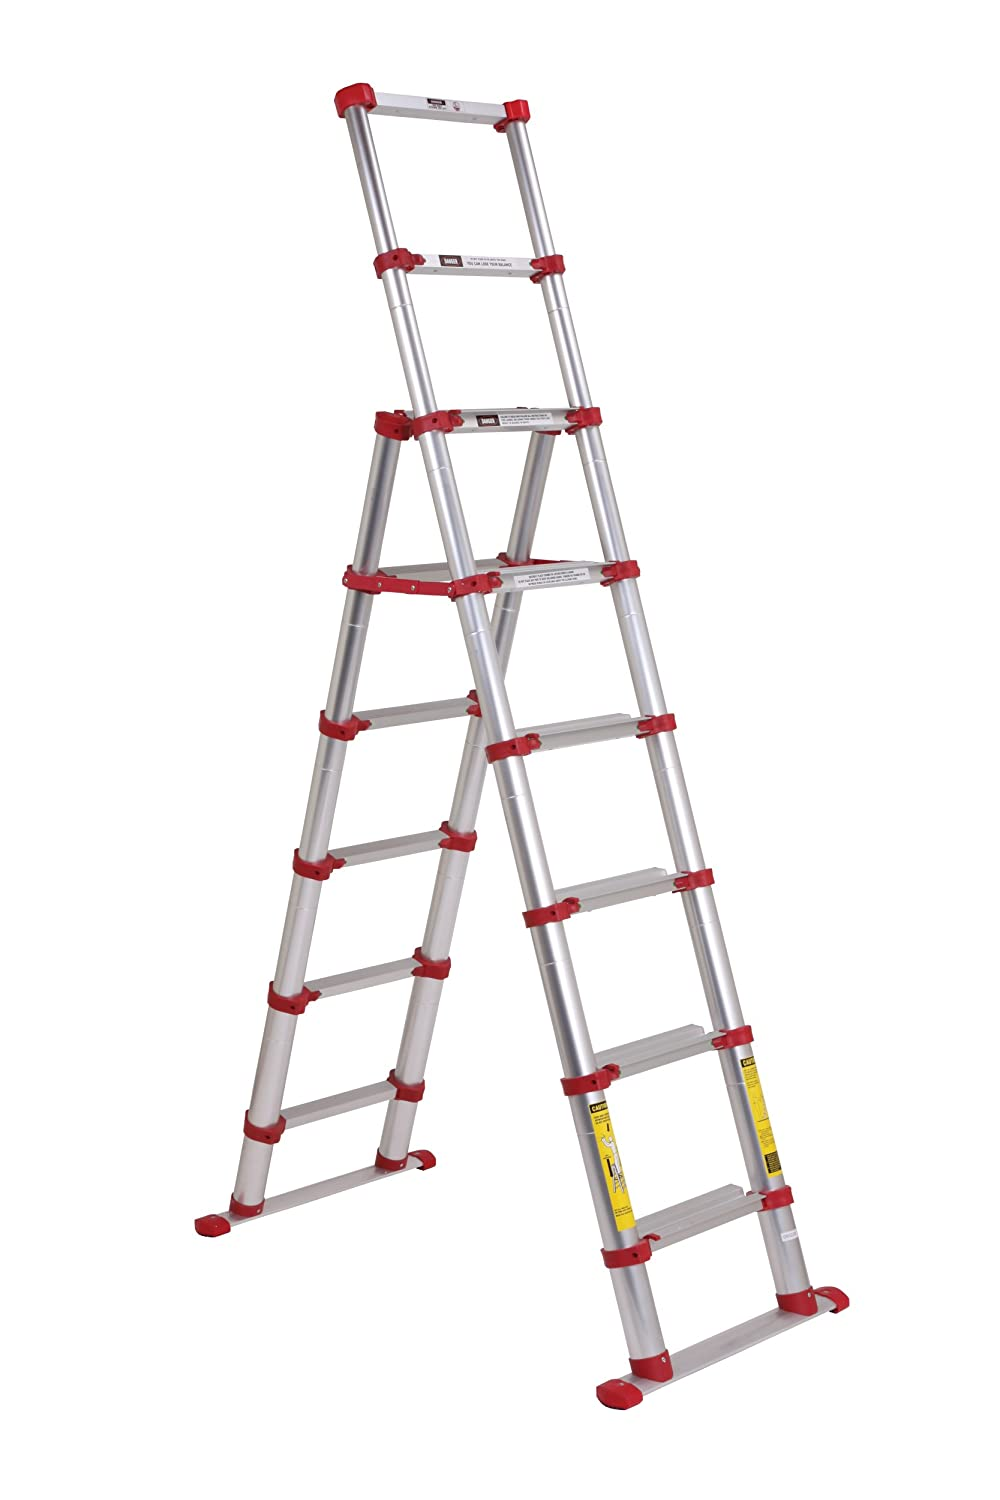 Portable Aluminum Telescoping Ladders Products To Find